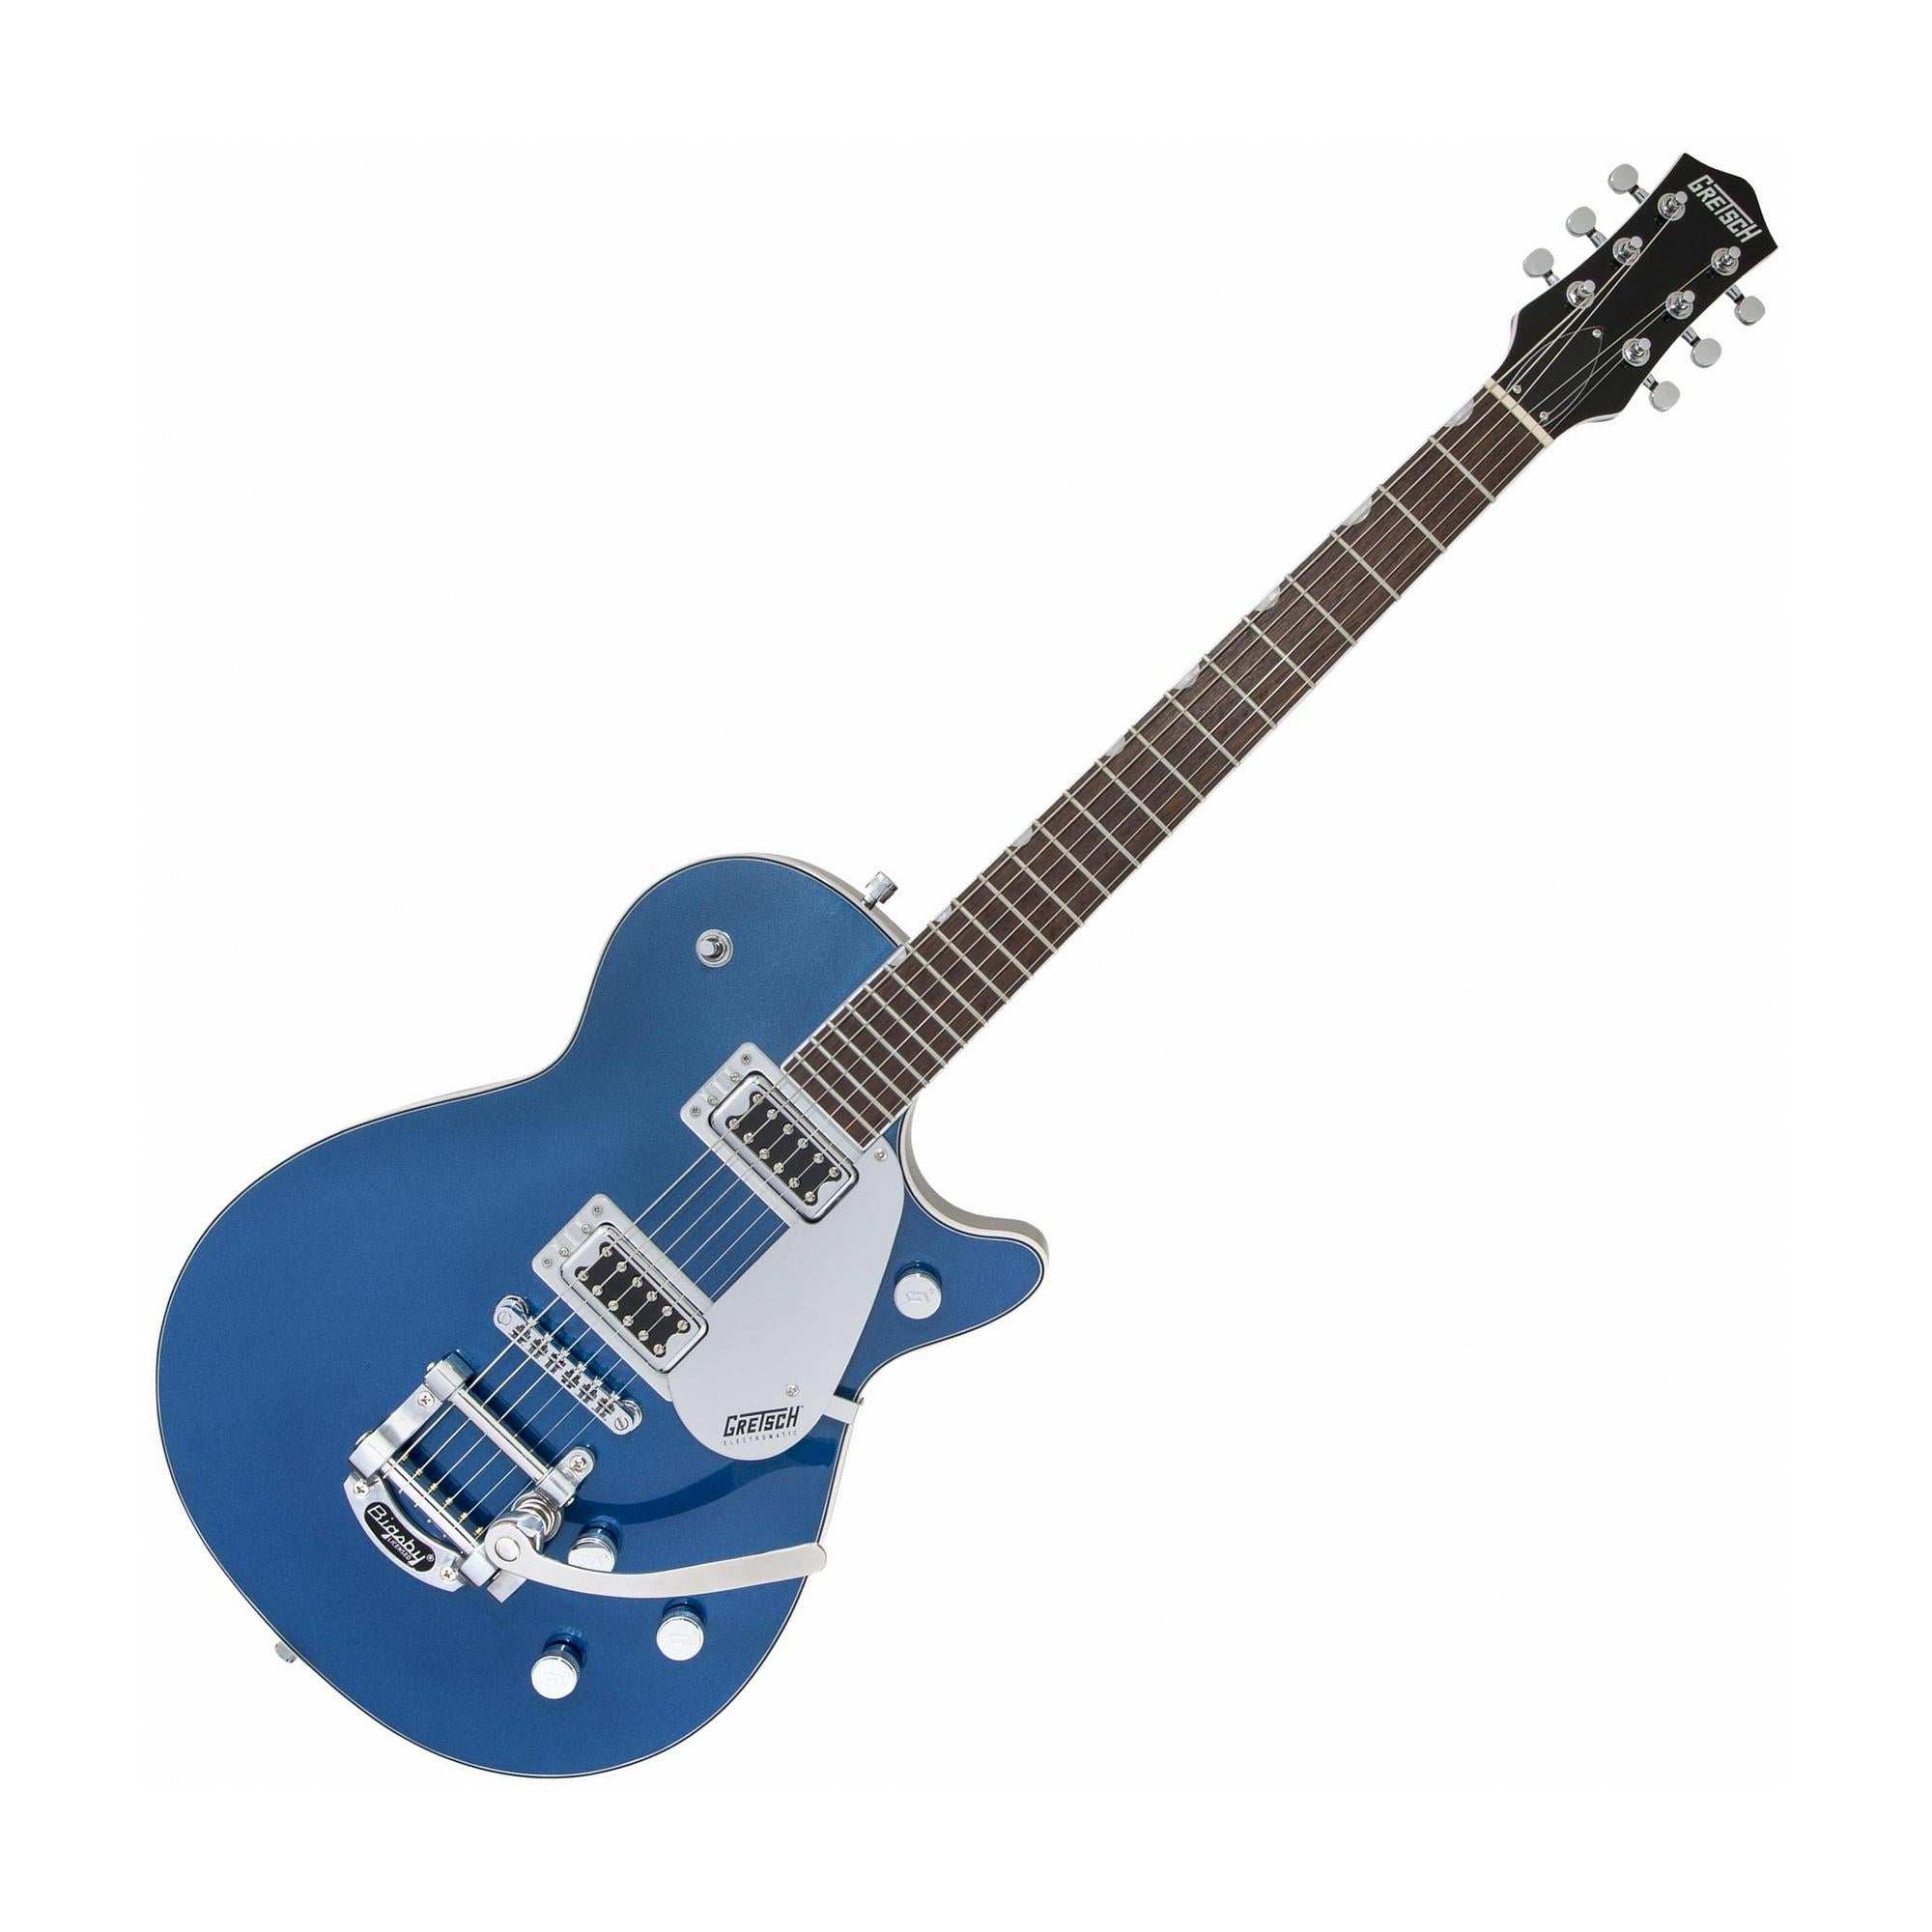 Gretsch G5230T Electromatic Jet FT Single-Cut Electric Guitar, Aleutian Blue